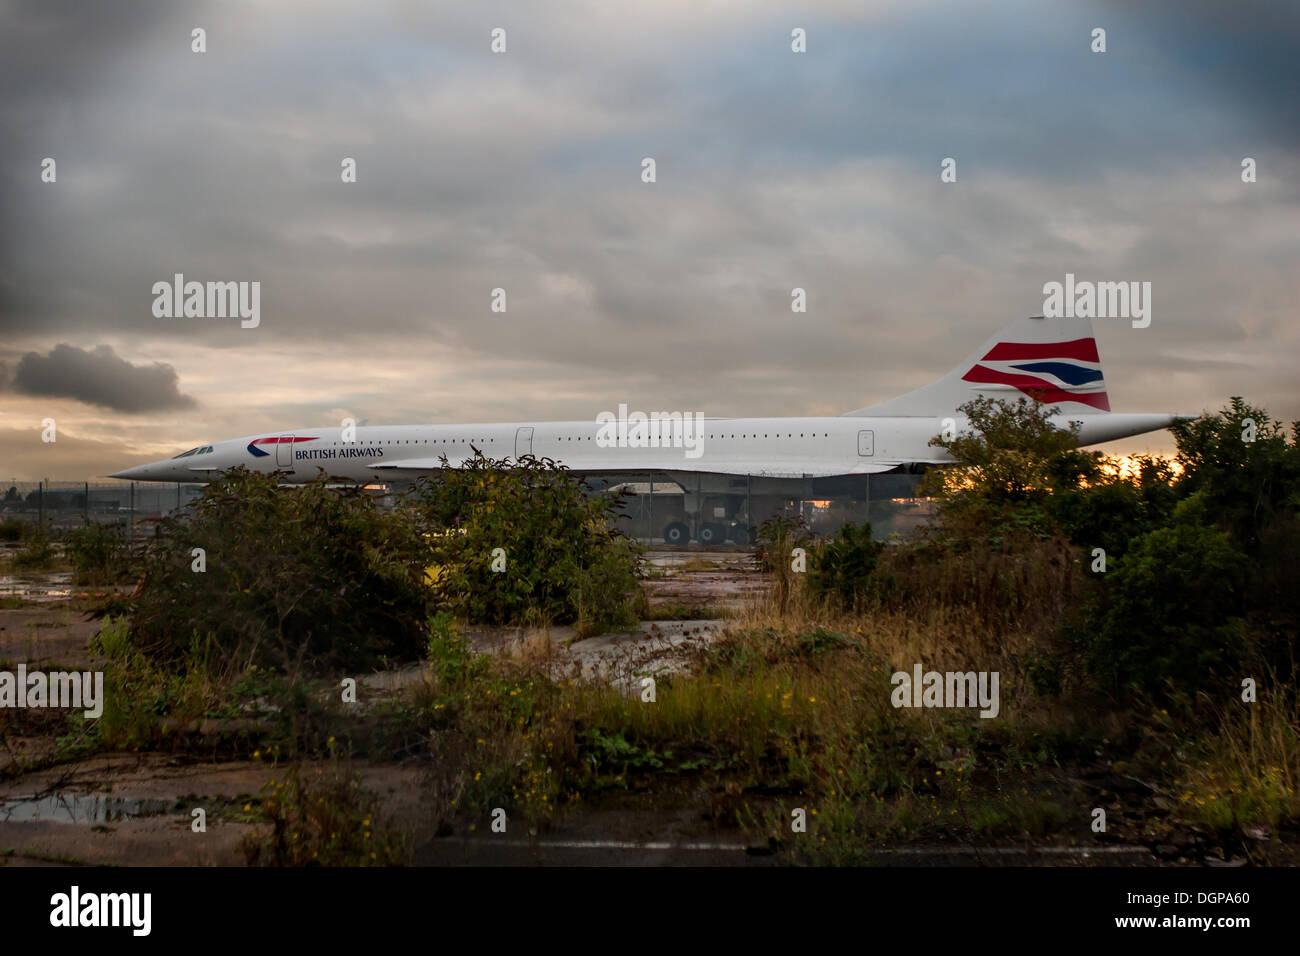 Heathrow, UK. 24th Oct, 2013. Ten years ago today, Concorde made its last commercial flight. Concorde G-BOAB sits at the end of Heathrow southern runway (09R/27L) Credit:  martyn wheatley/Alamy Live News - Stock Image